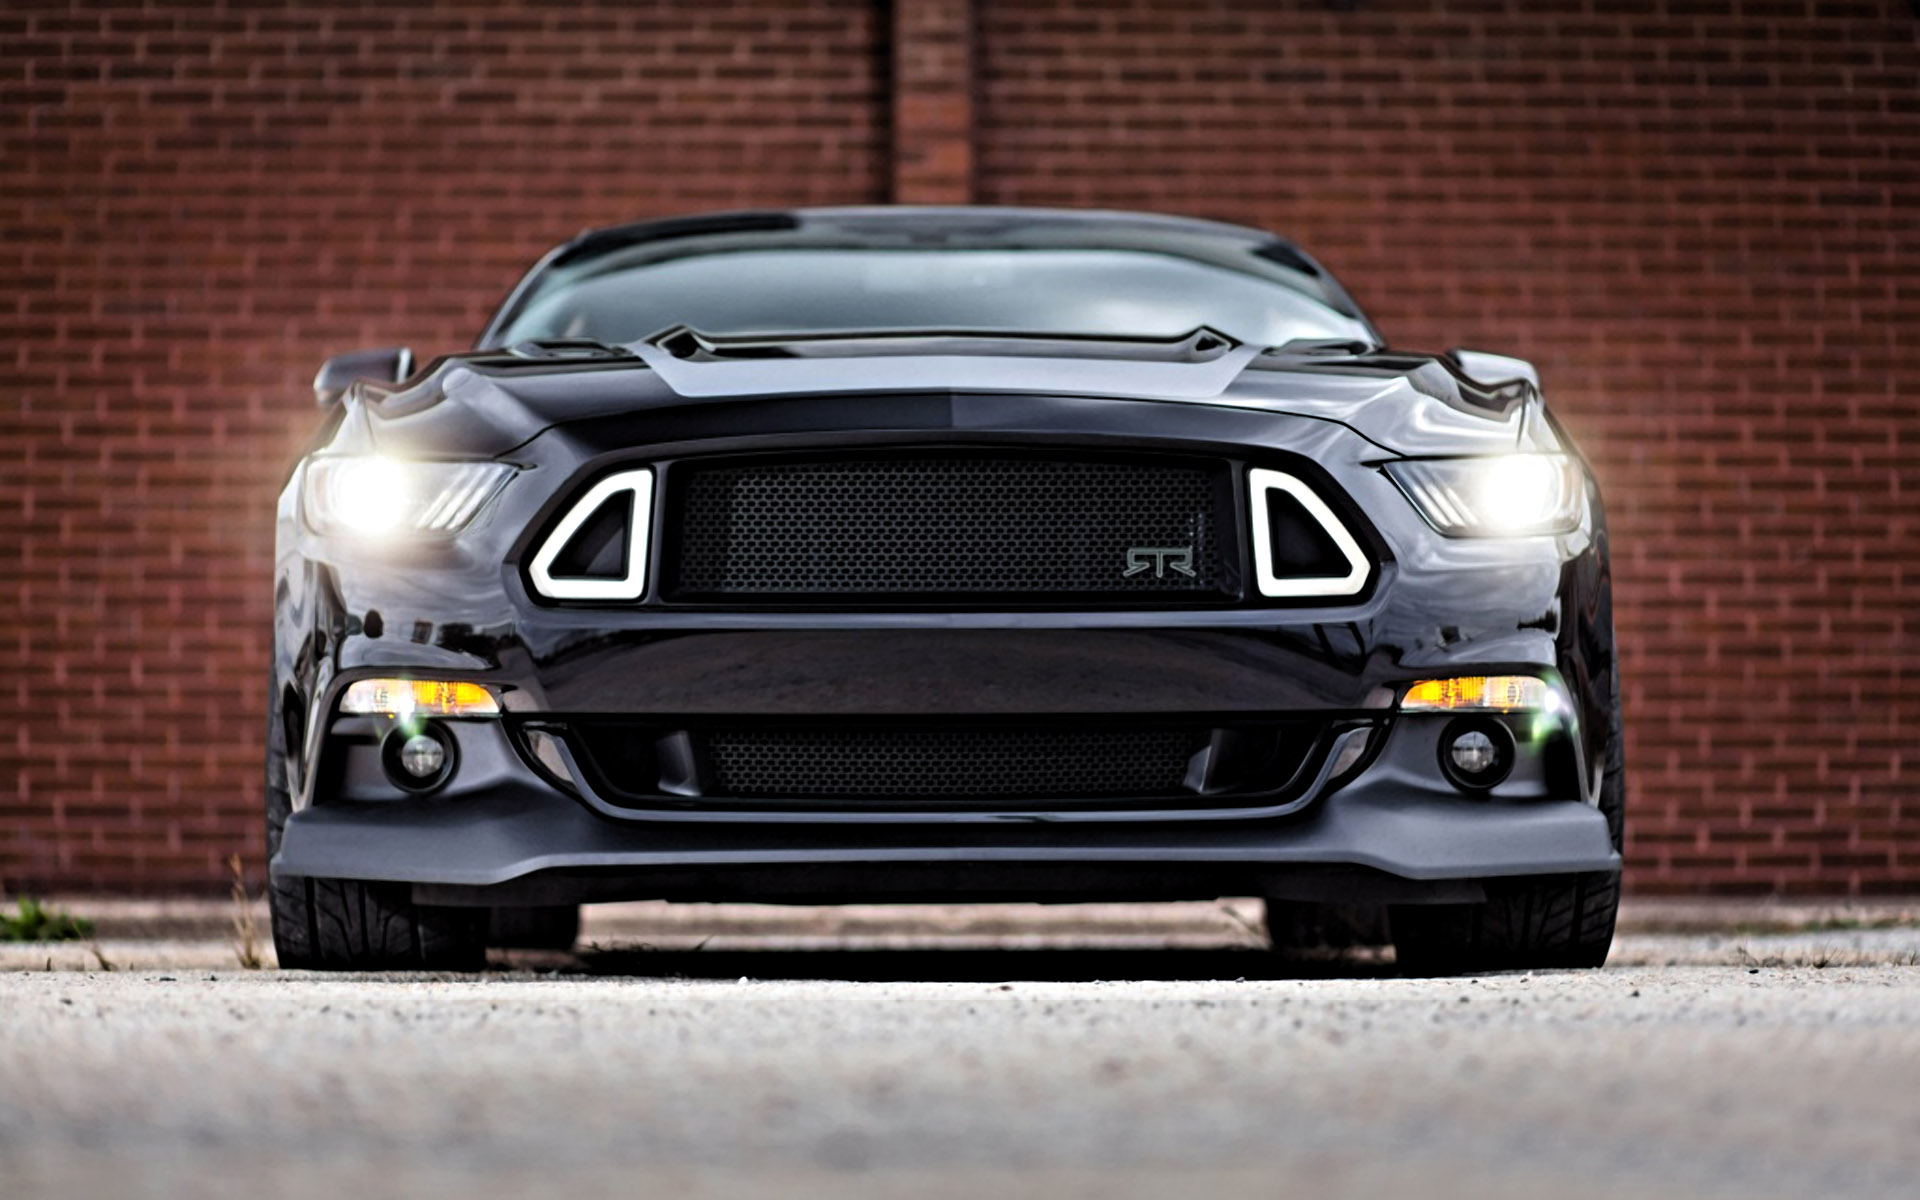 2015 Ford Mustang RTR Wallpaper   iBackgroundWallpaper 1920x1200